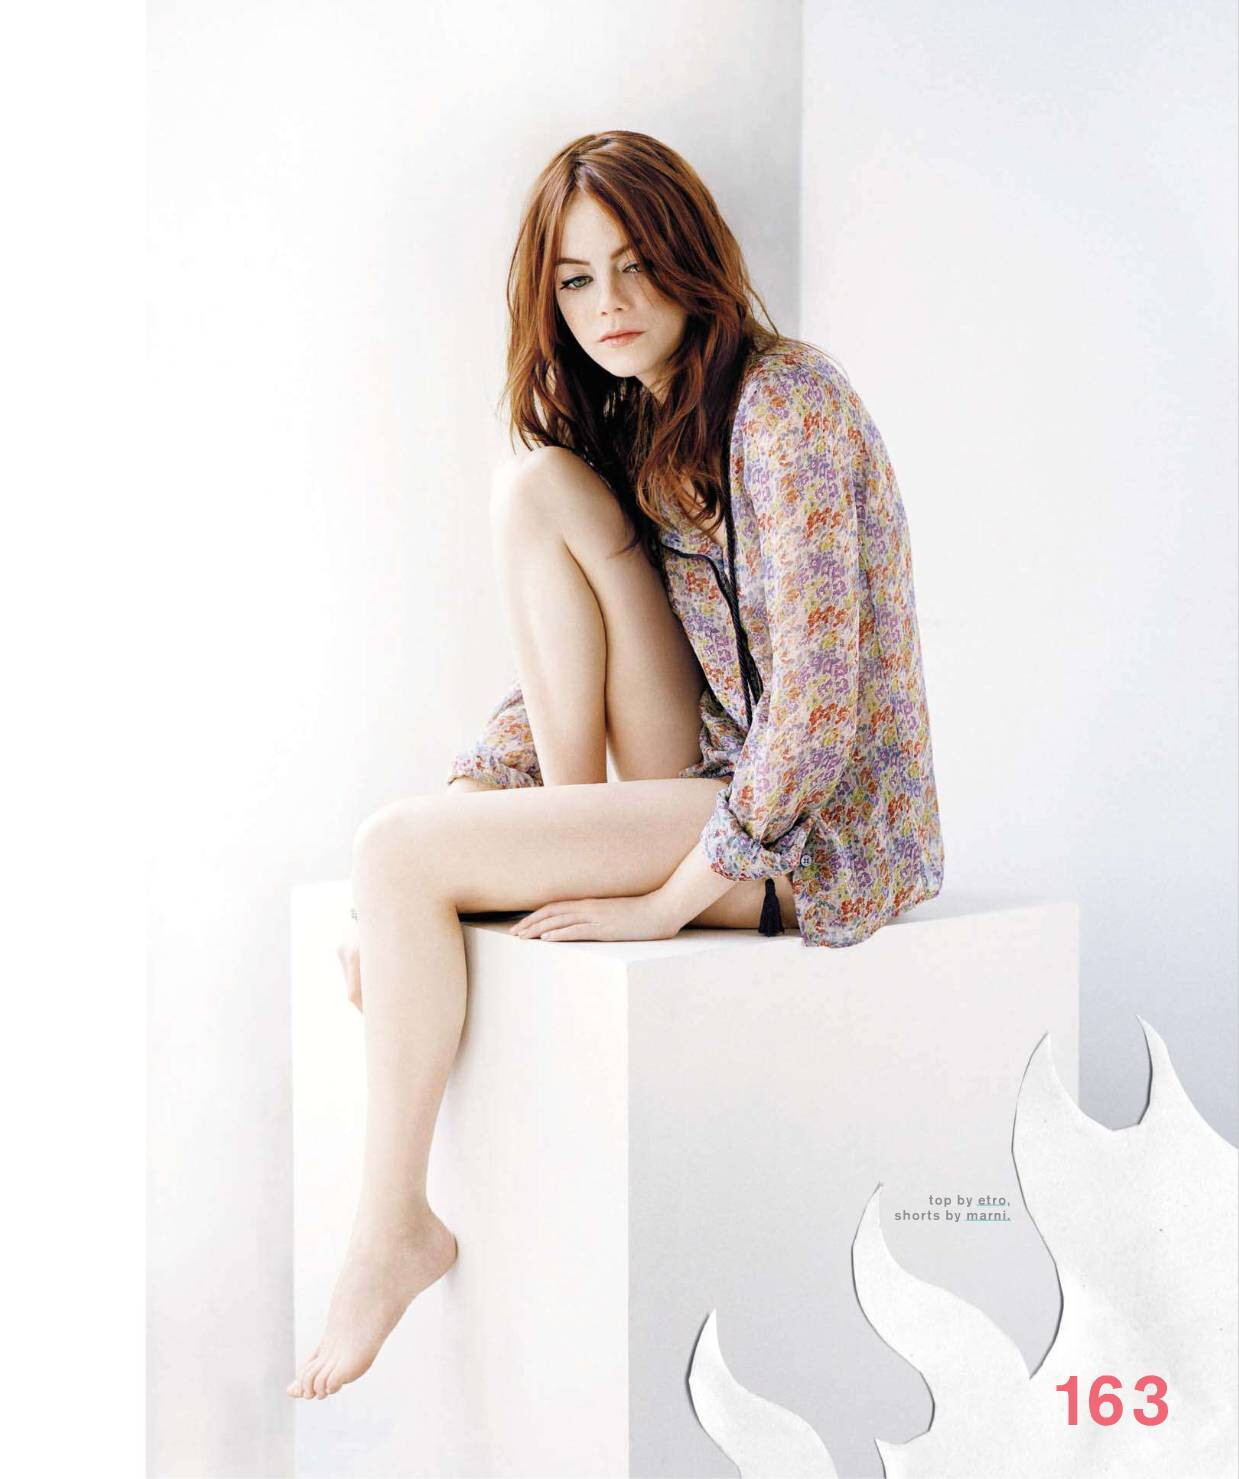 Emma Stone photo (emma_stone008, 1239 x 1479 pixels, 140 kB)